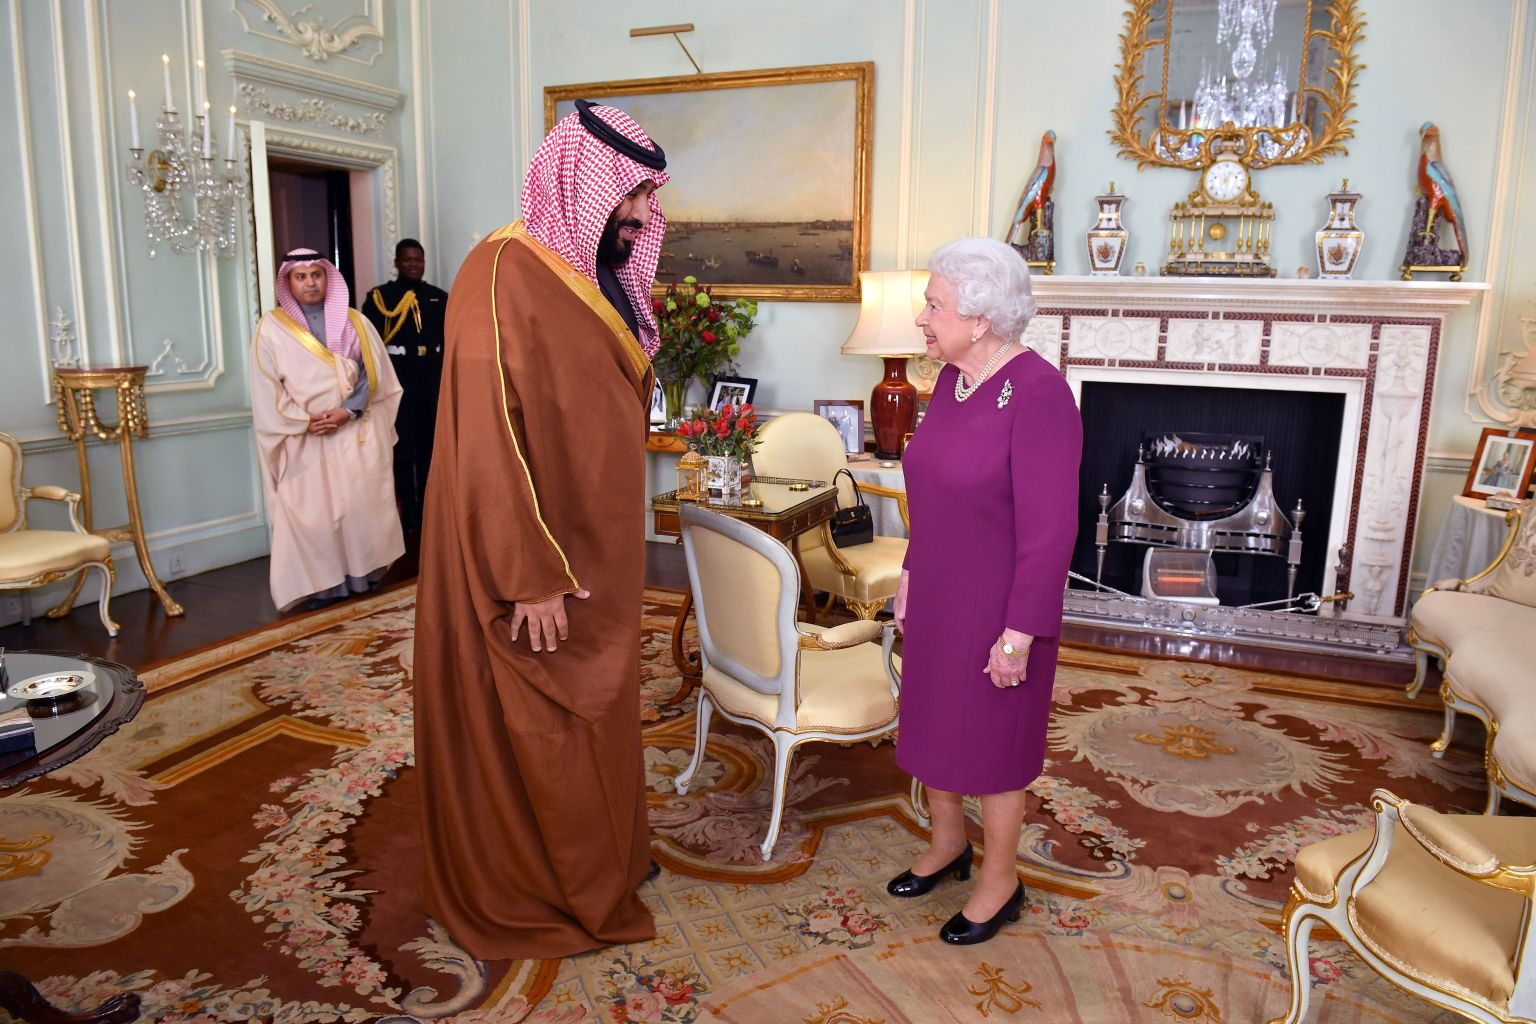 TOPSHOT - Britain's Queen Elizabeth II greets Saudi Arabia's Crown Prince Mohammed bin Salman at Buckingham Palace in central London on March 7, 2018. Salman, who is on a three day visit to the UK, will lunch Wednesday with the Queen at Buckingham Palace, while Prince Charles will host him at a dinner with Prince William among the guests. The crown prince will jointly host with May the inaugural UK-Saudi strategic partnership council in No. 10, the prime minister's office and residence.  / AFP PHOTO / Dominic Lipinski        (Photo credit should read DOMINIC LIPINSKI/AFP/Getty Images)